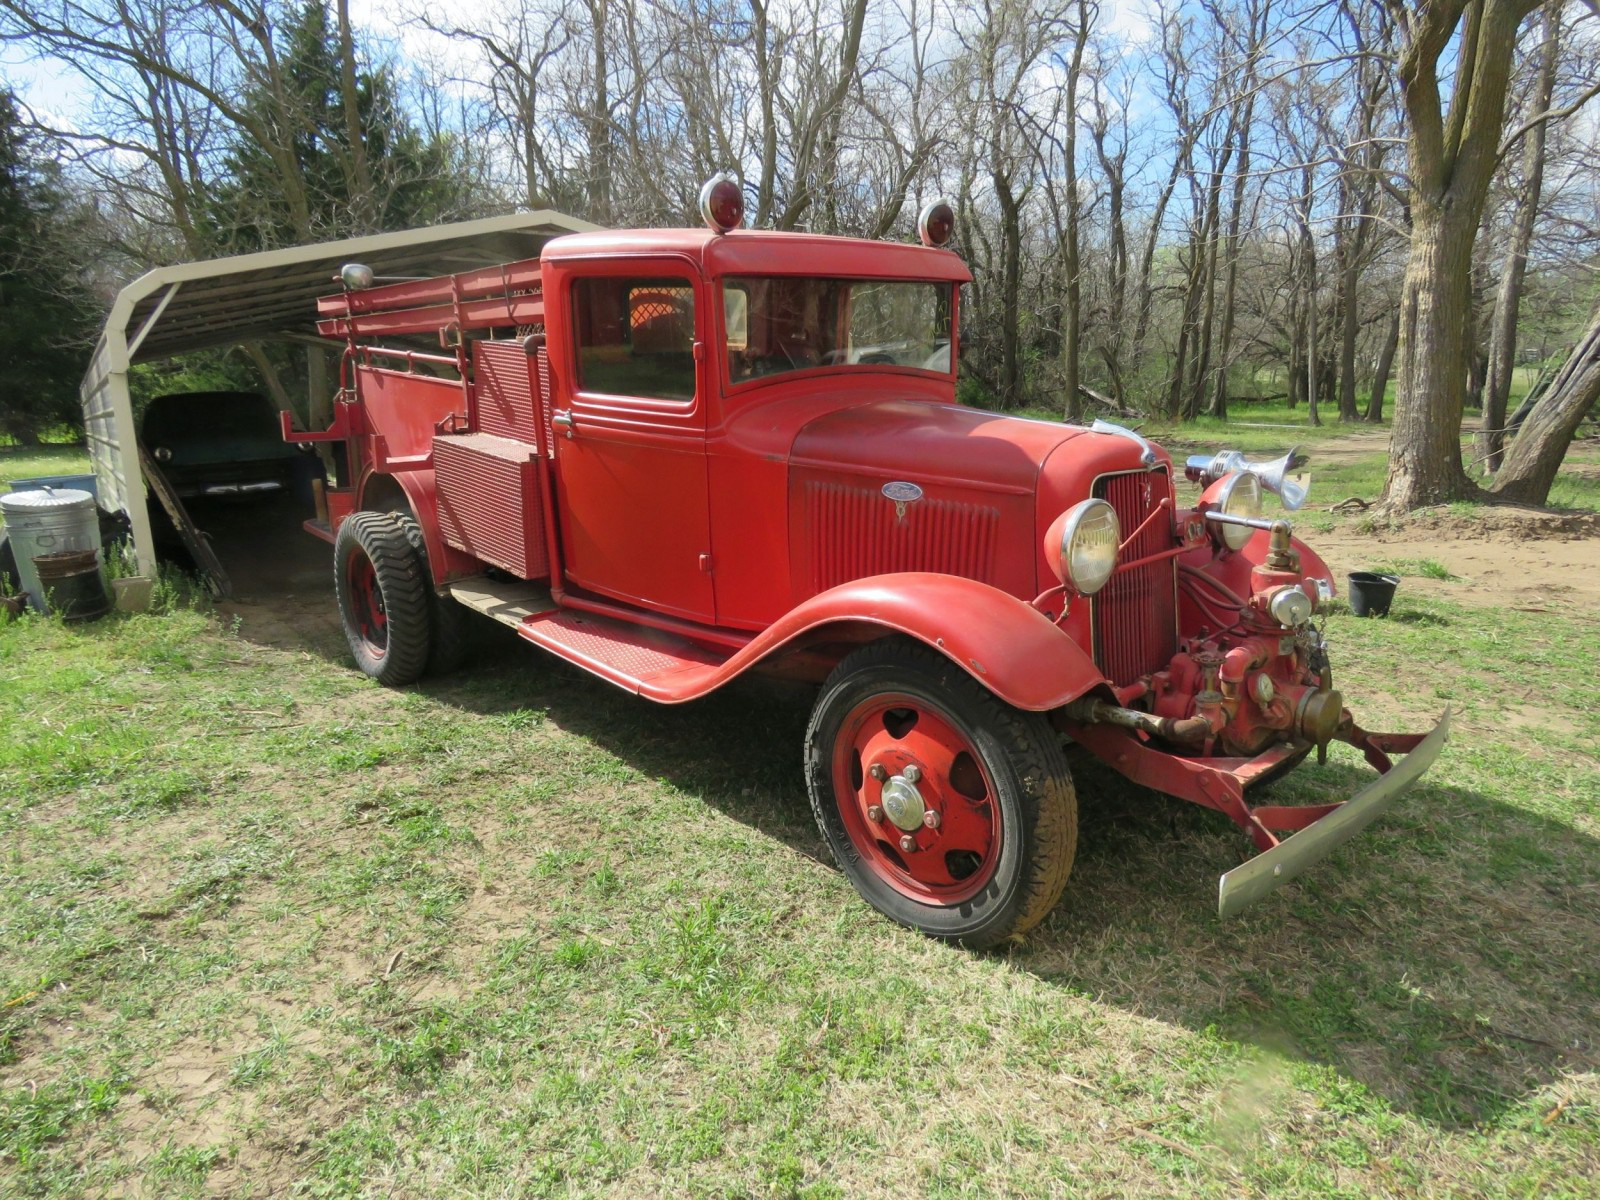 bob-regehr-collection-1934-ford-firetruck-2